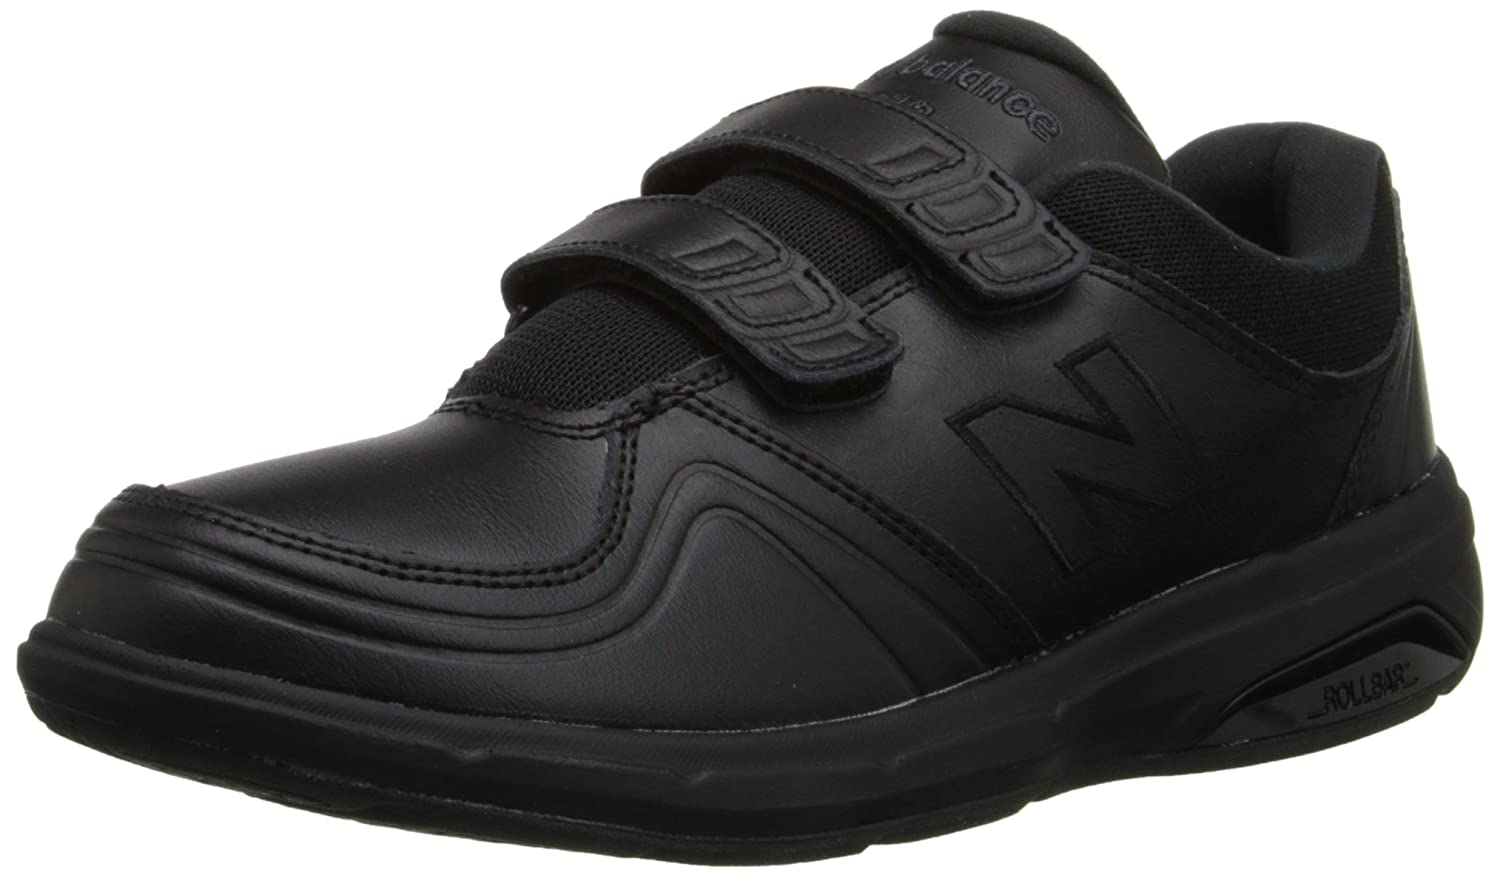 New Balance Women's WW813 Hook and Loop Walking Shoe B00OB1SIEE 9.5 D US|Black